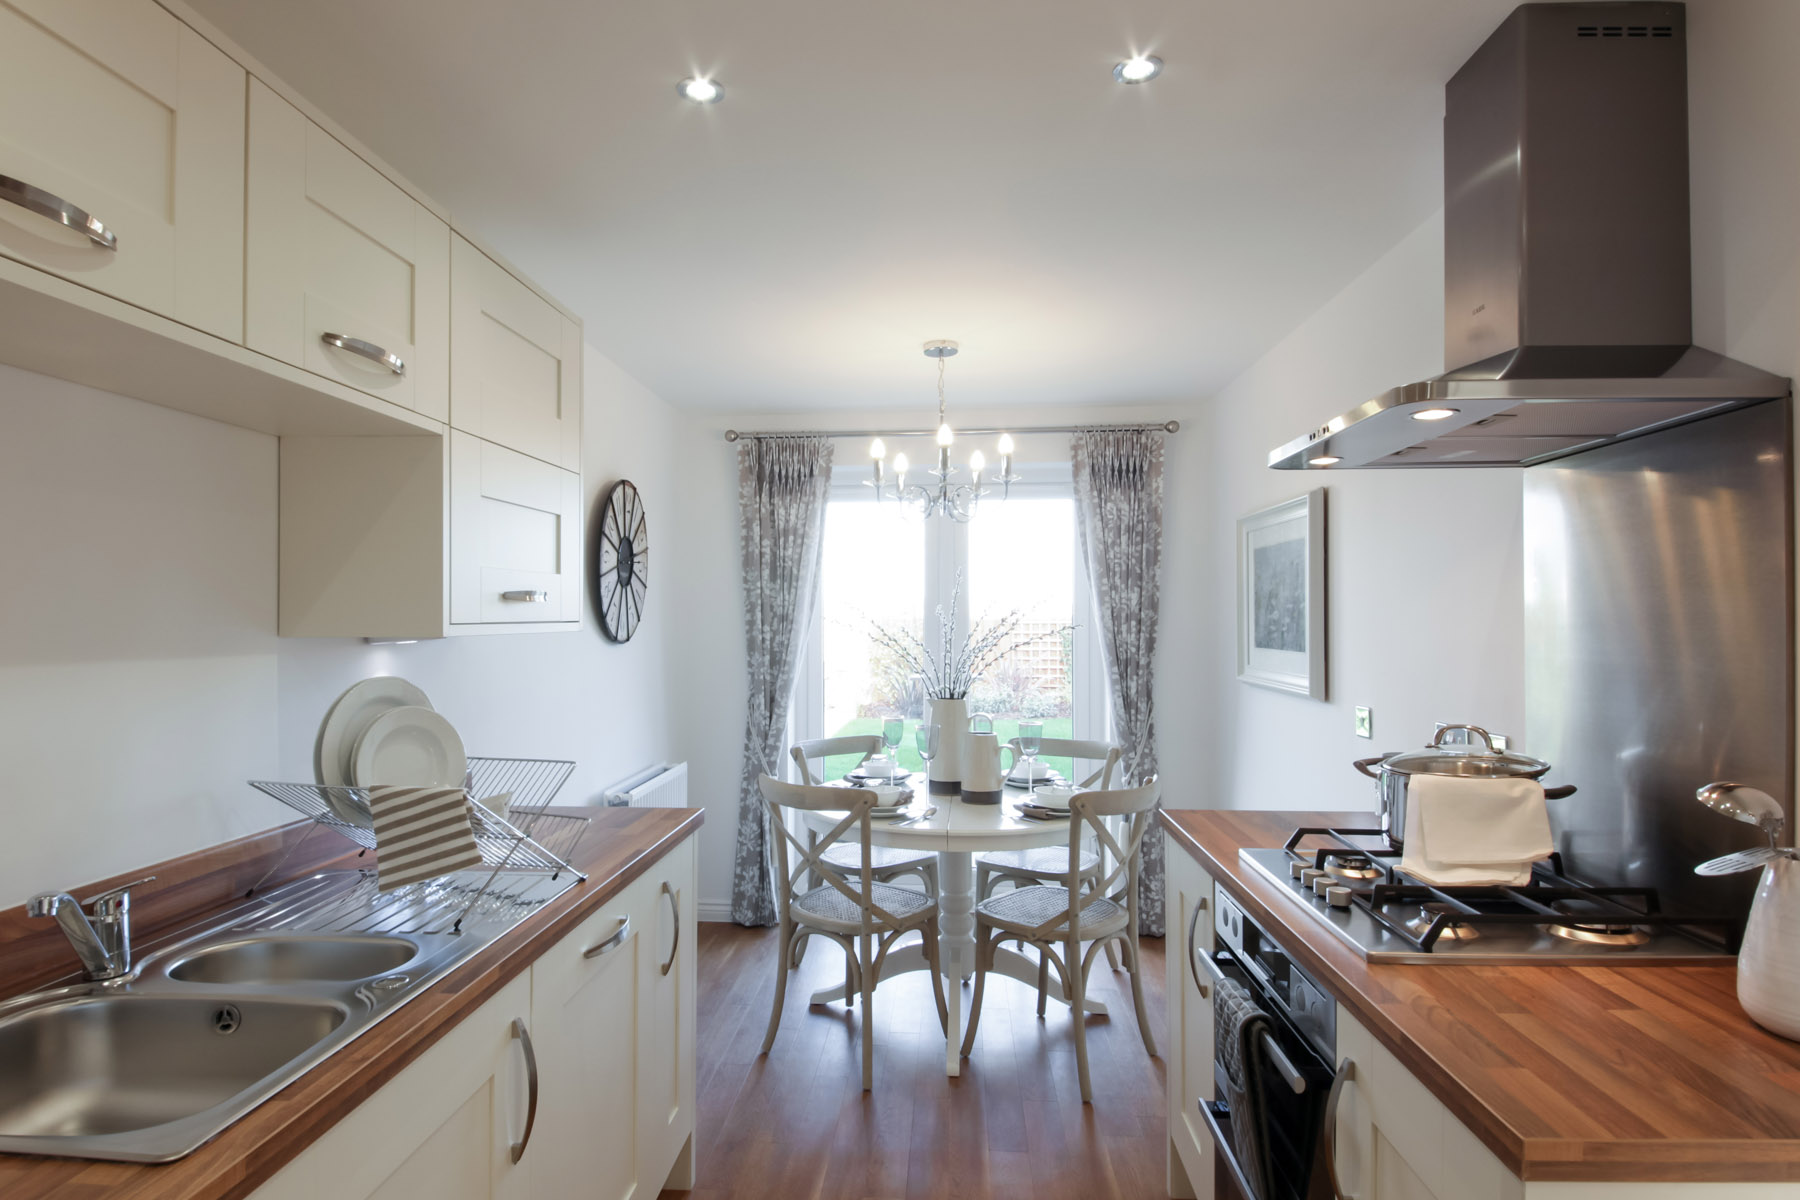 Bradenham kitchen and breakfast area